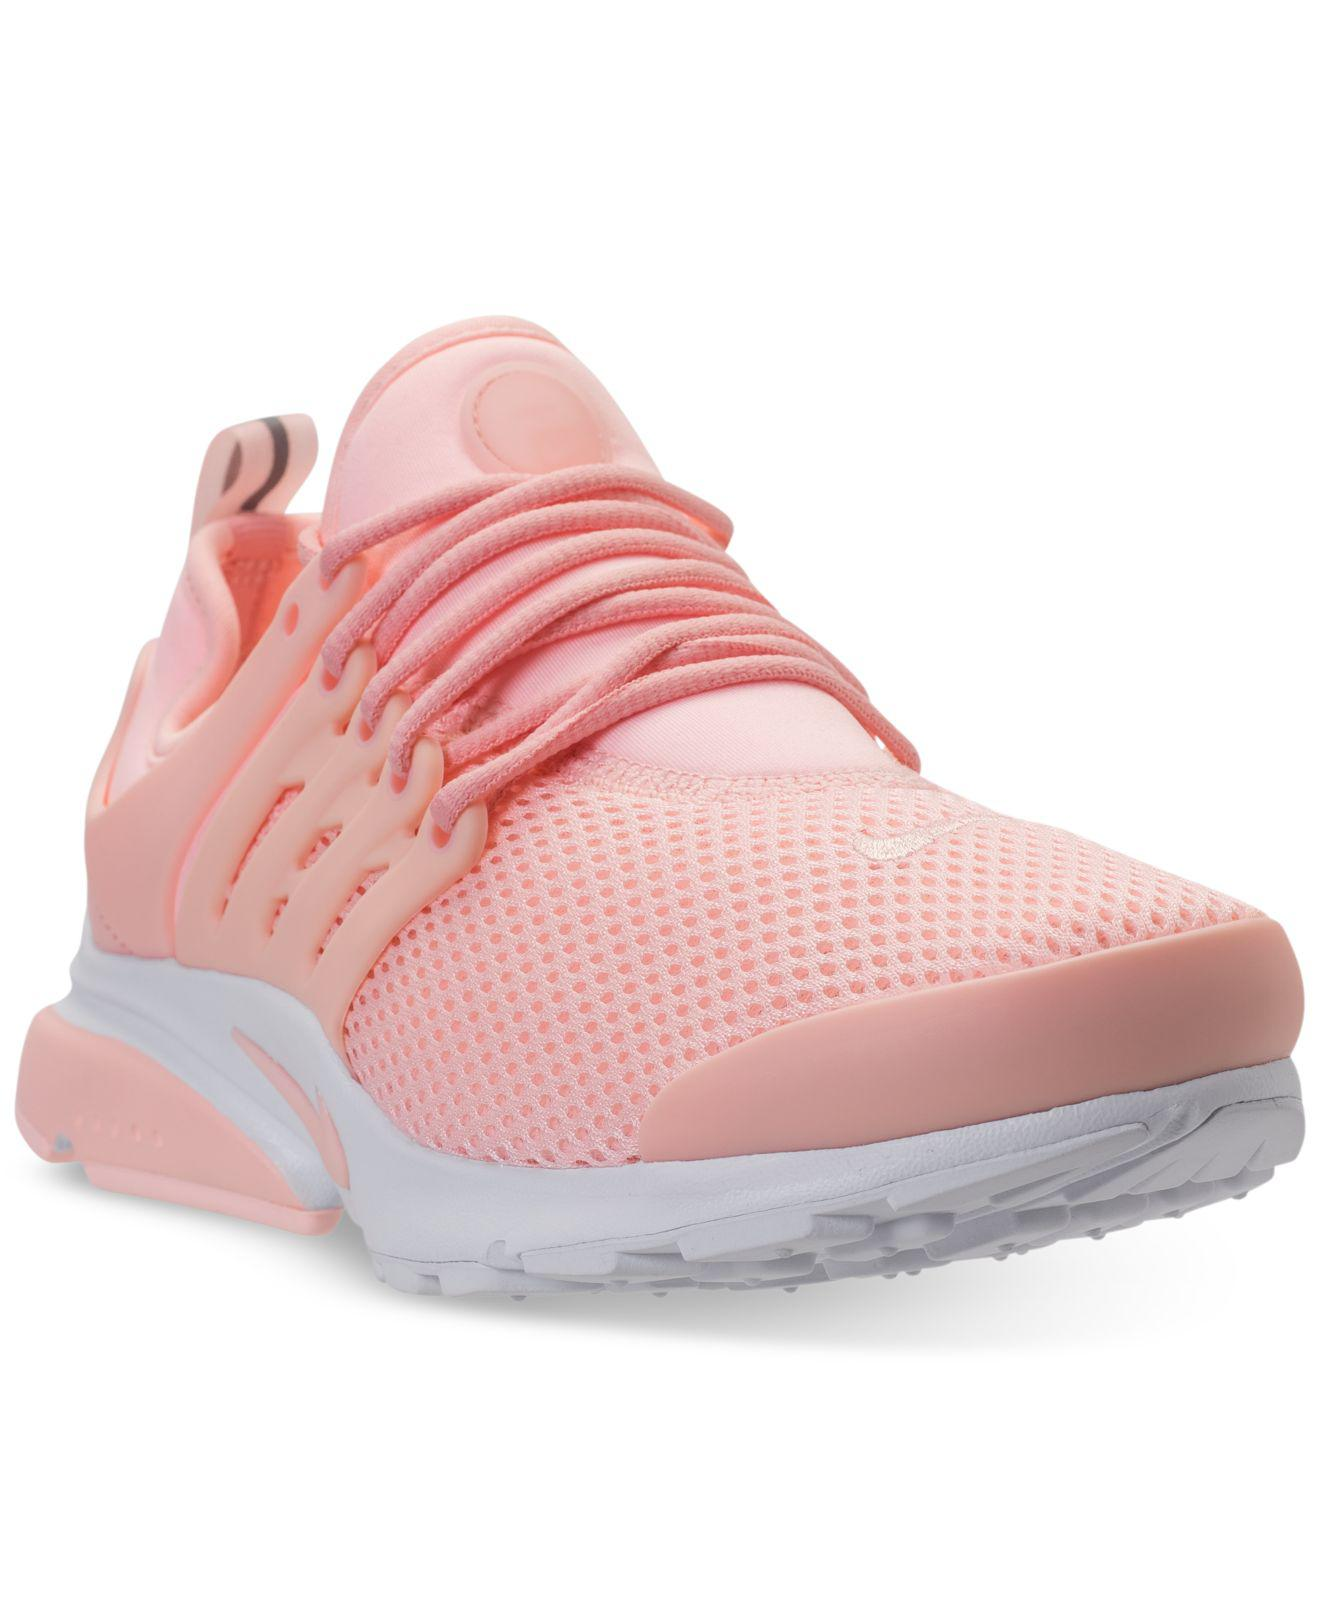 Lyst - Nike Air Presto Running Sneakers From Finish Line in Pink e13144a22858